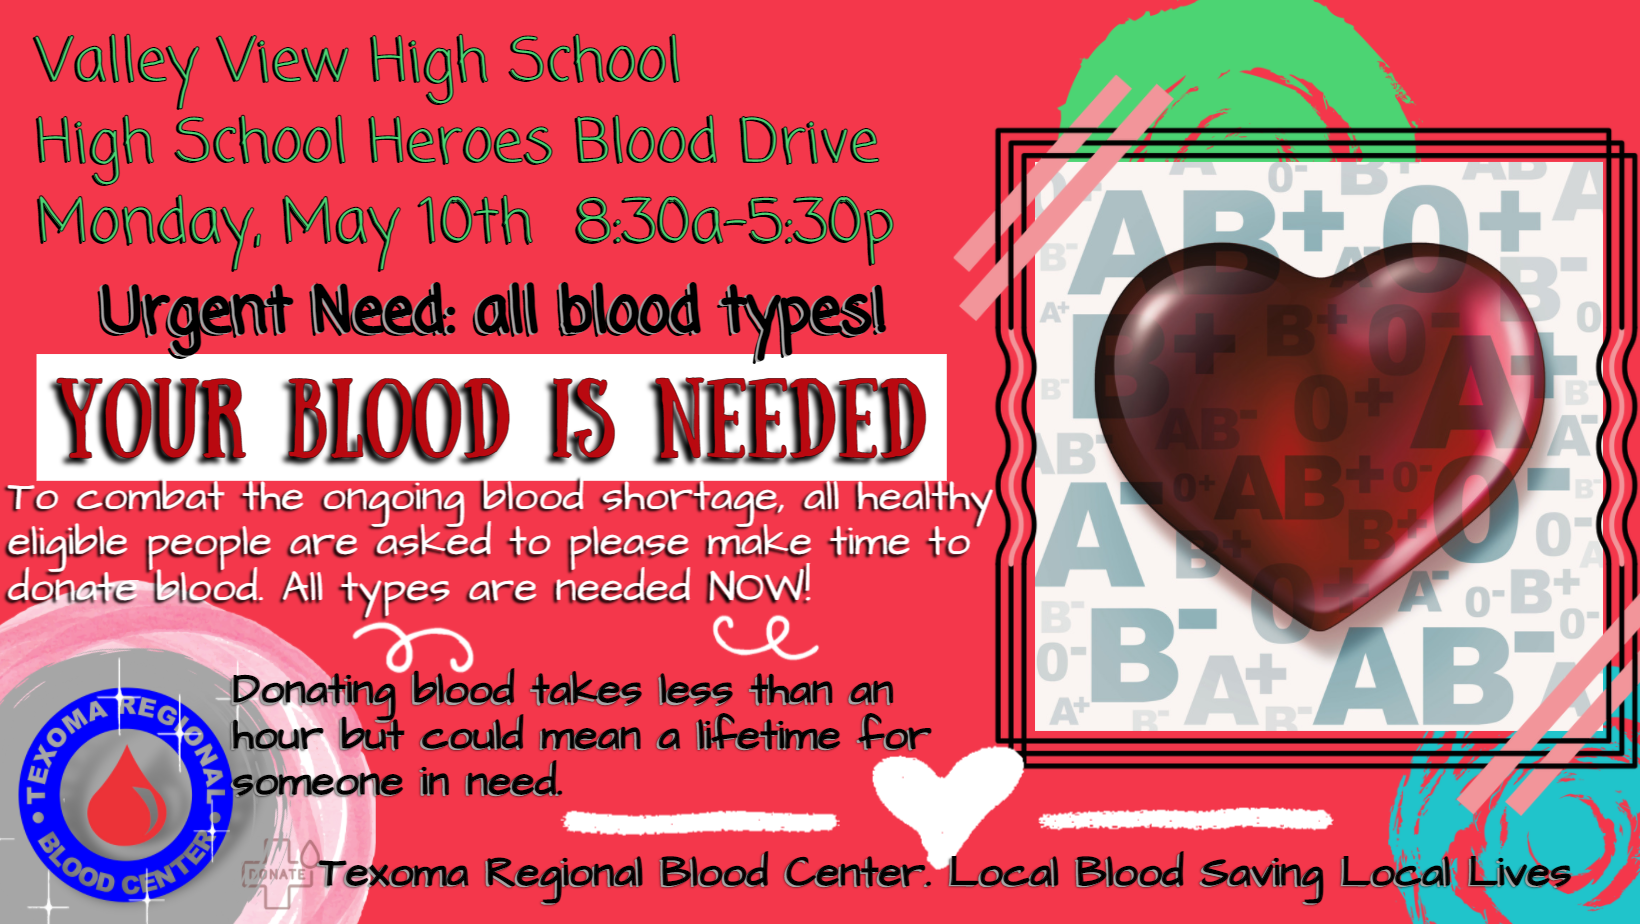 Flyer for the High School Heroes Blood Drive